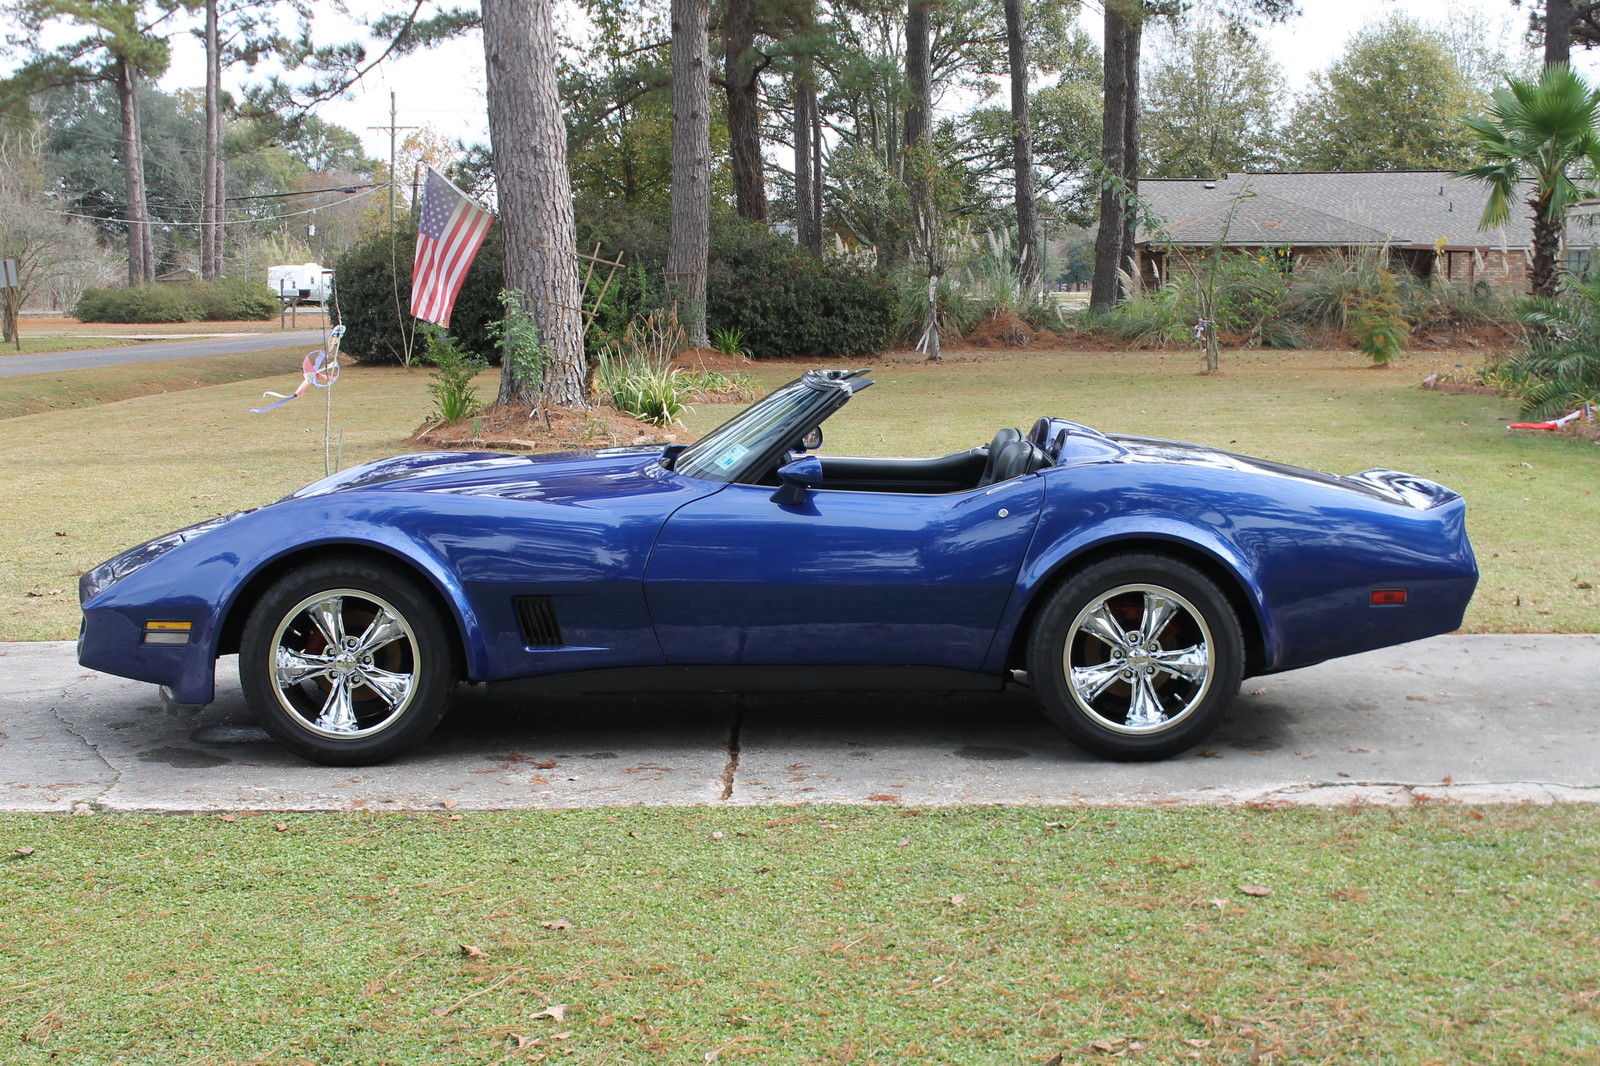 1980 custom corvette convertible one of a kind classic chevrolet corvette 1980 for sale. Black Bedroom Furniture Sets. Home Design Ideas